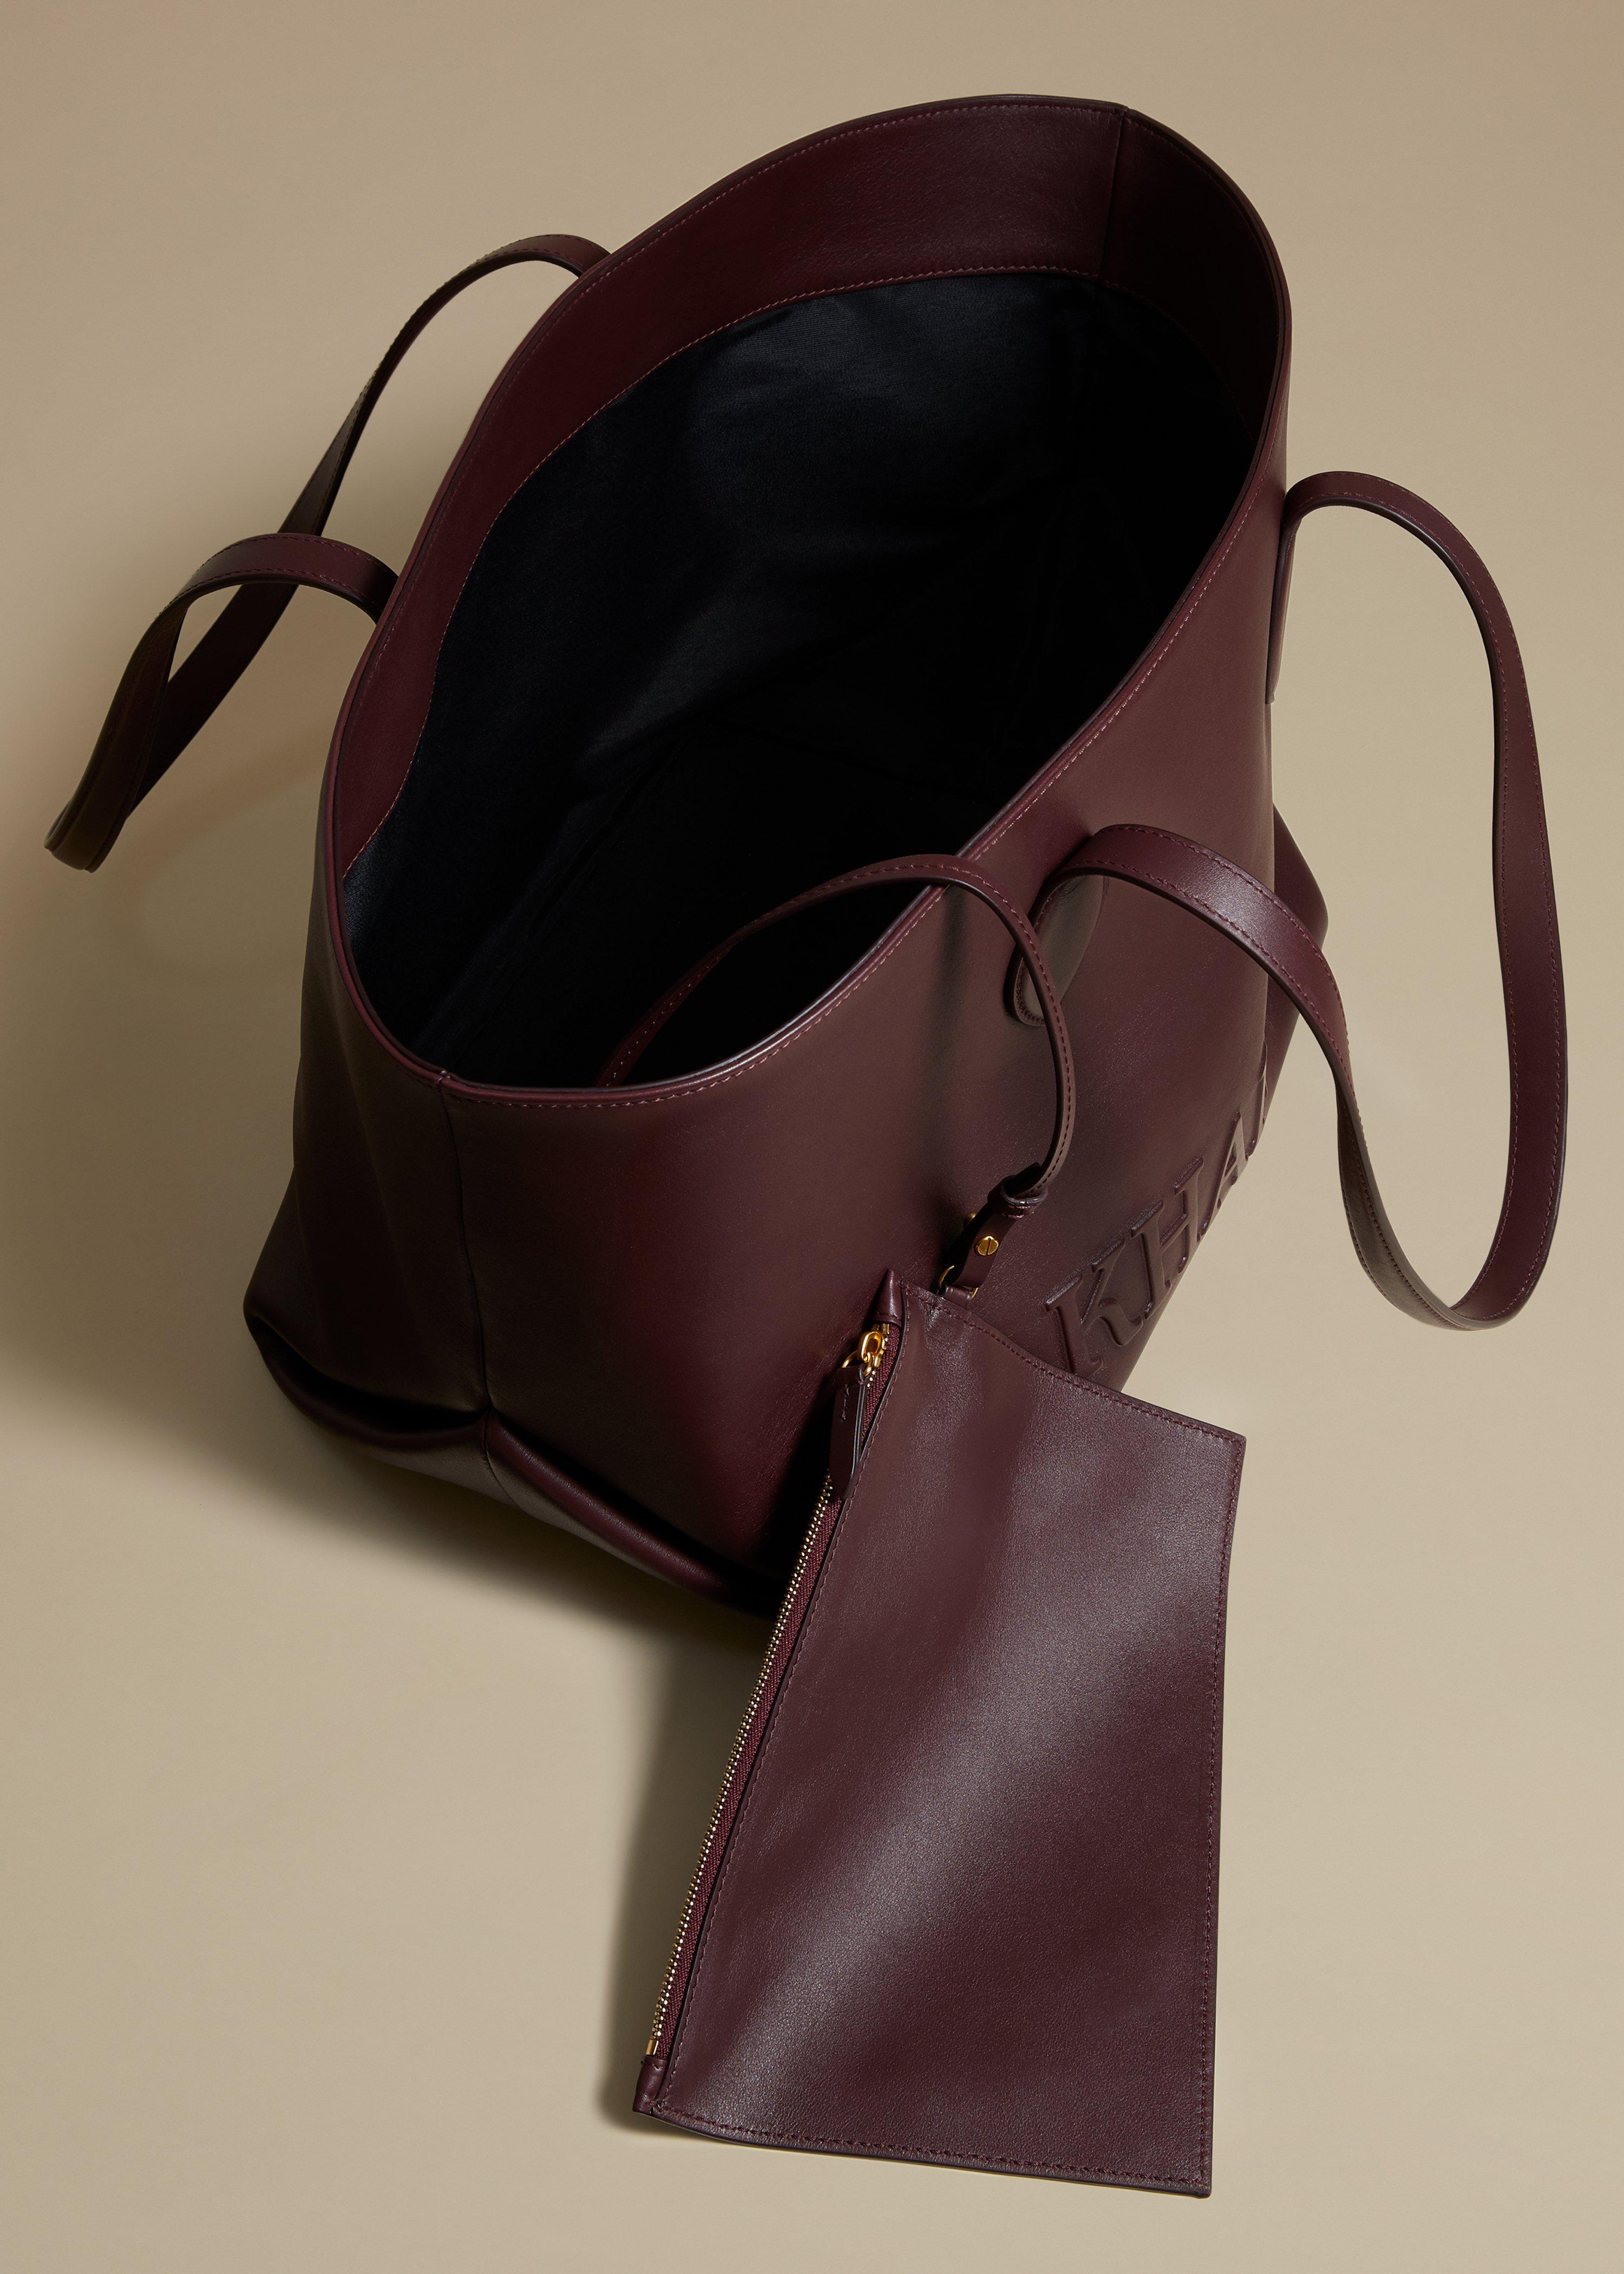 The Florence Tote in Deep Red Leather 3